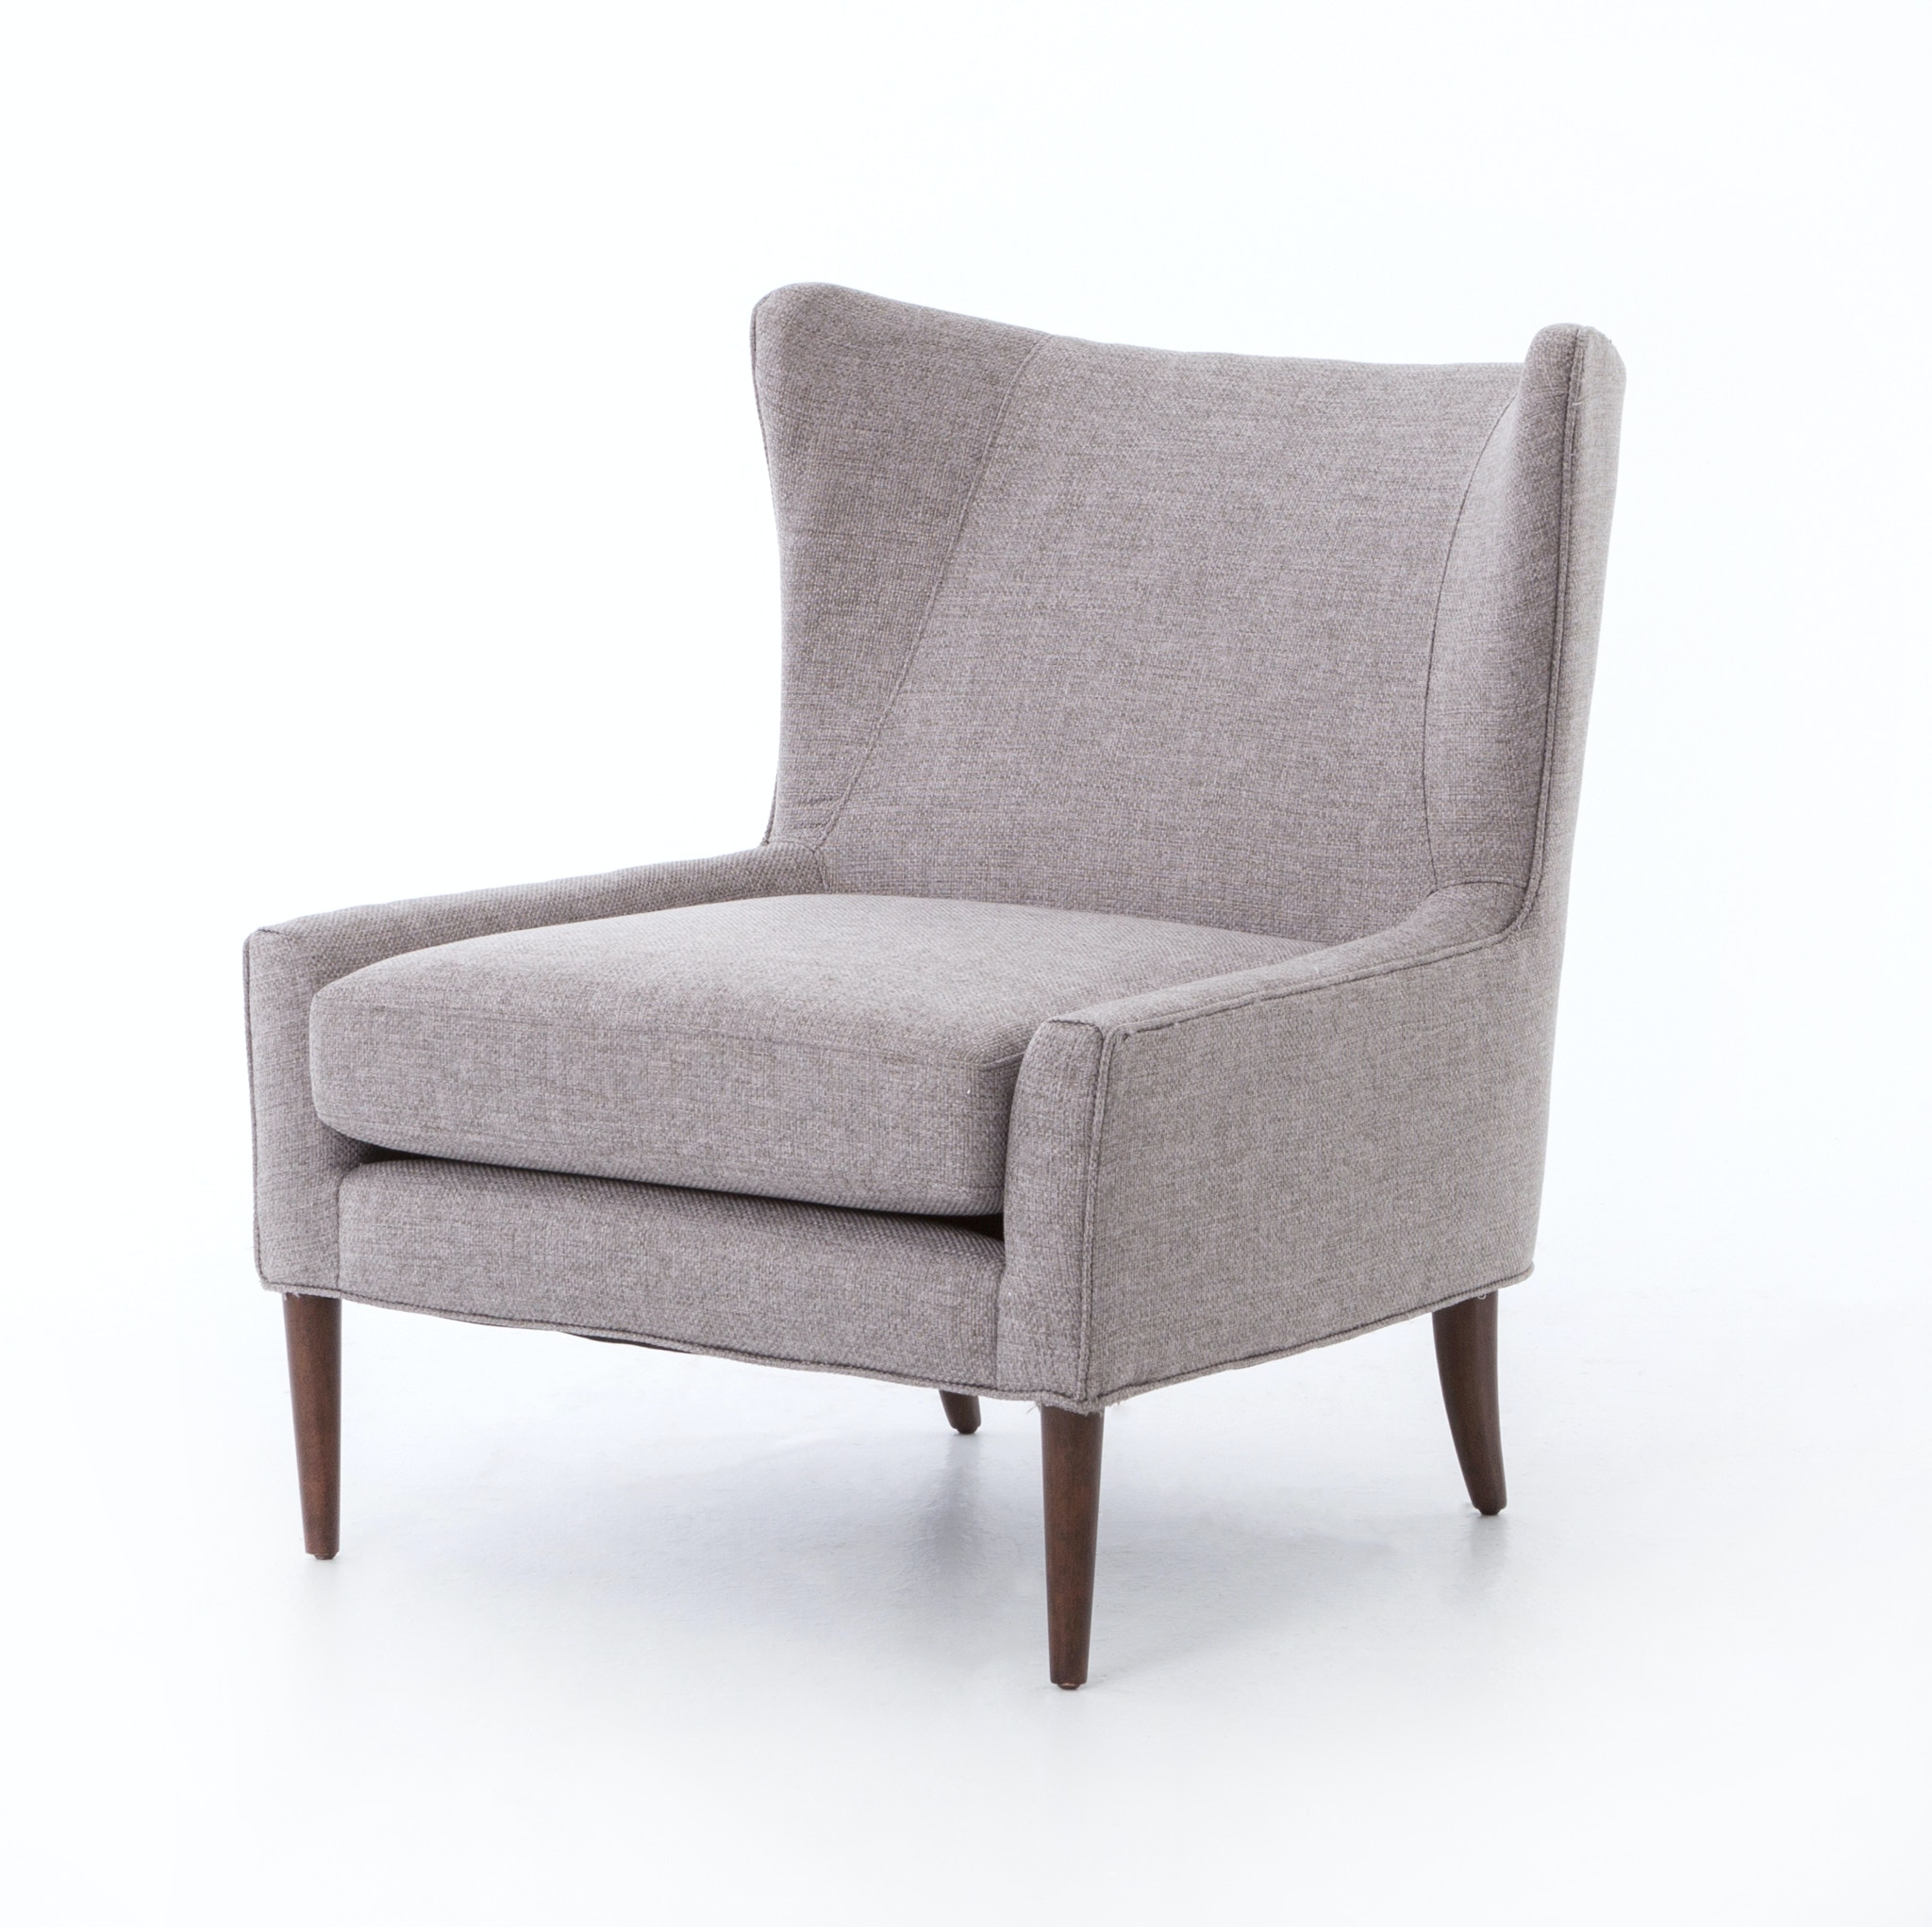 Four Hands Furniture Marlow Wing Chair Chess Pewter CKEN B7Y 360